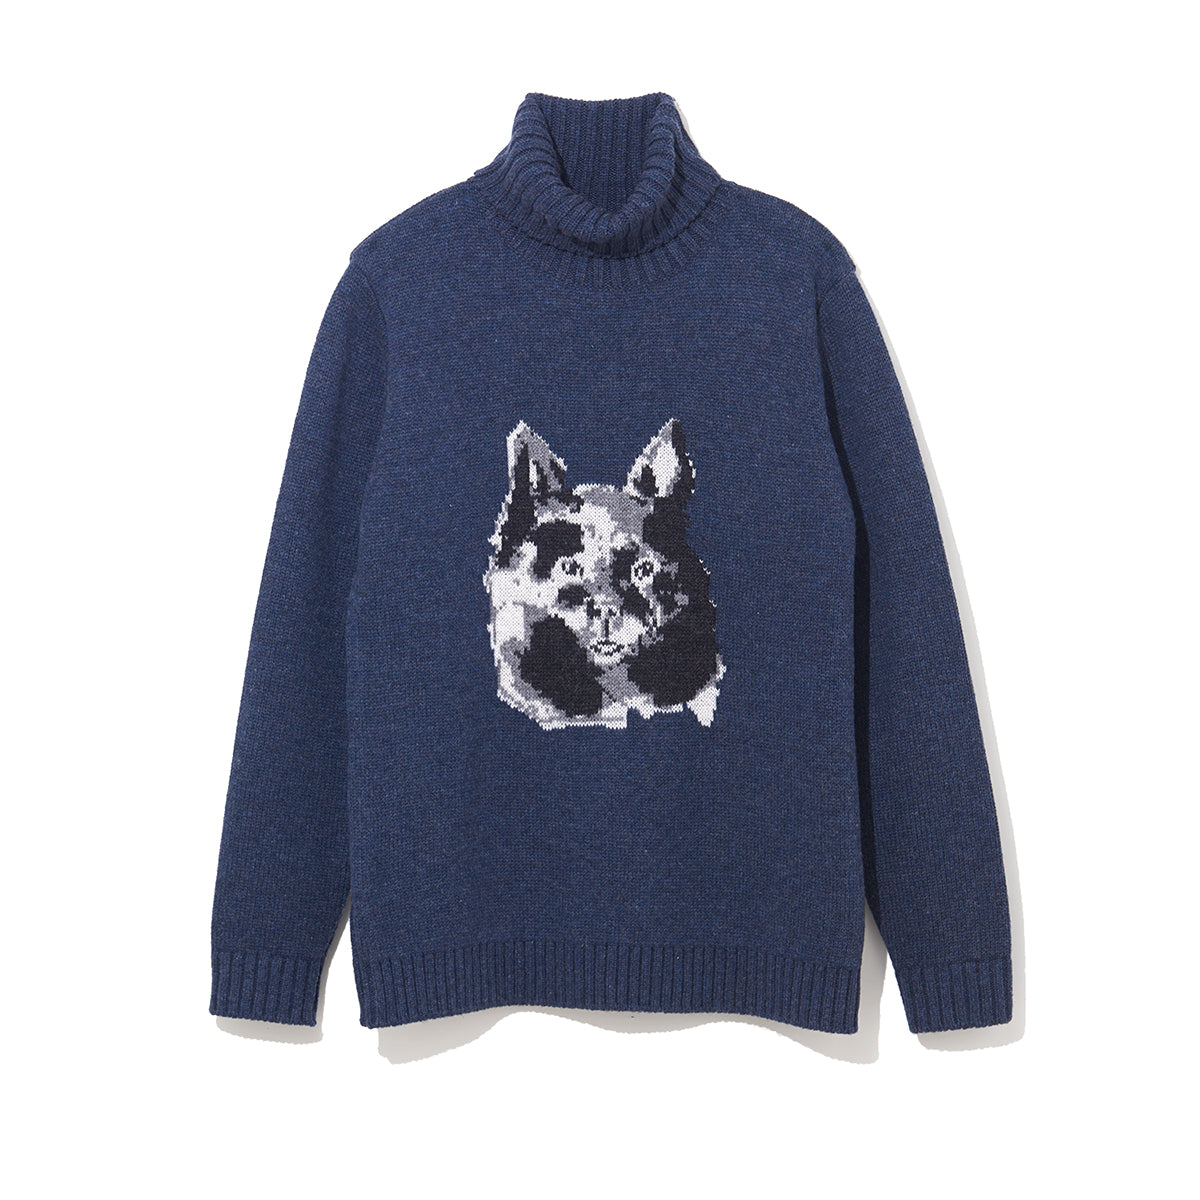 ILLUSTRATION TURTLE NECK KNIT B by Jody Asano / NAVY (21A-NSA-KN-03)